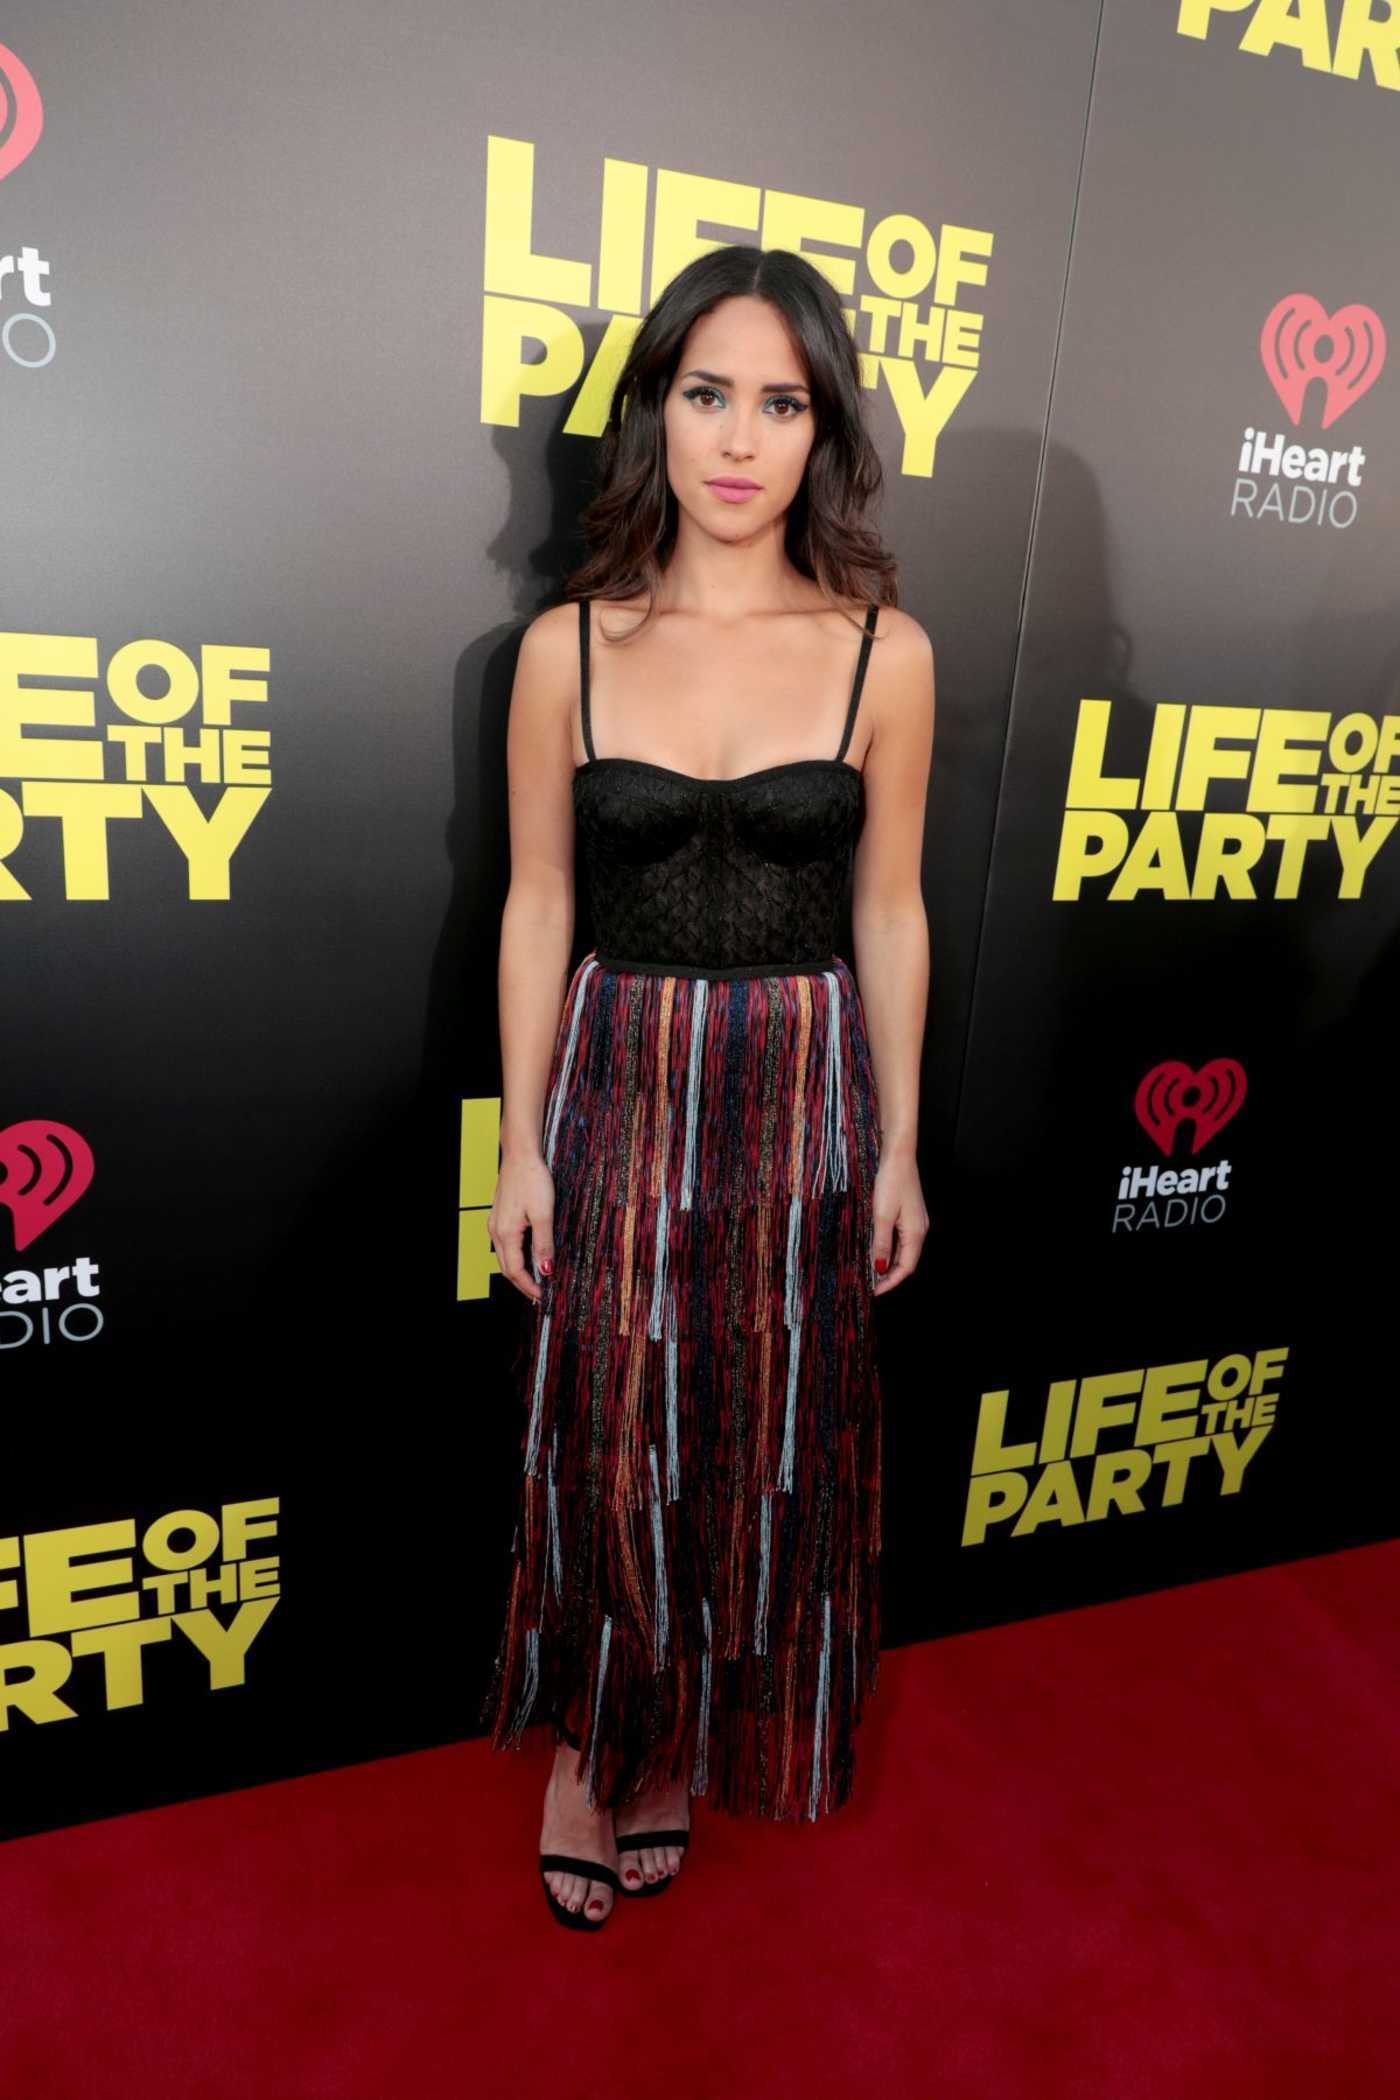 Adria Arjona at the Life of the Party World Premiere in Auburn 04/30/2018